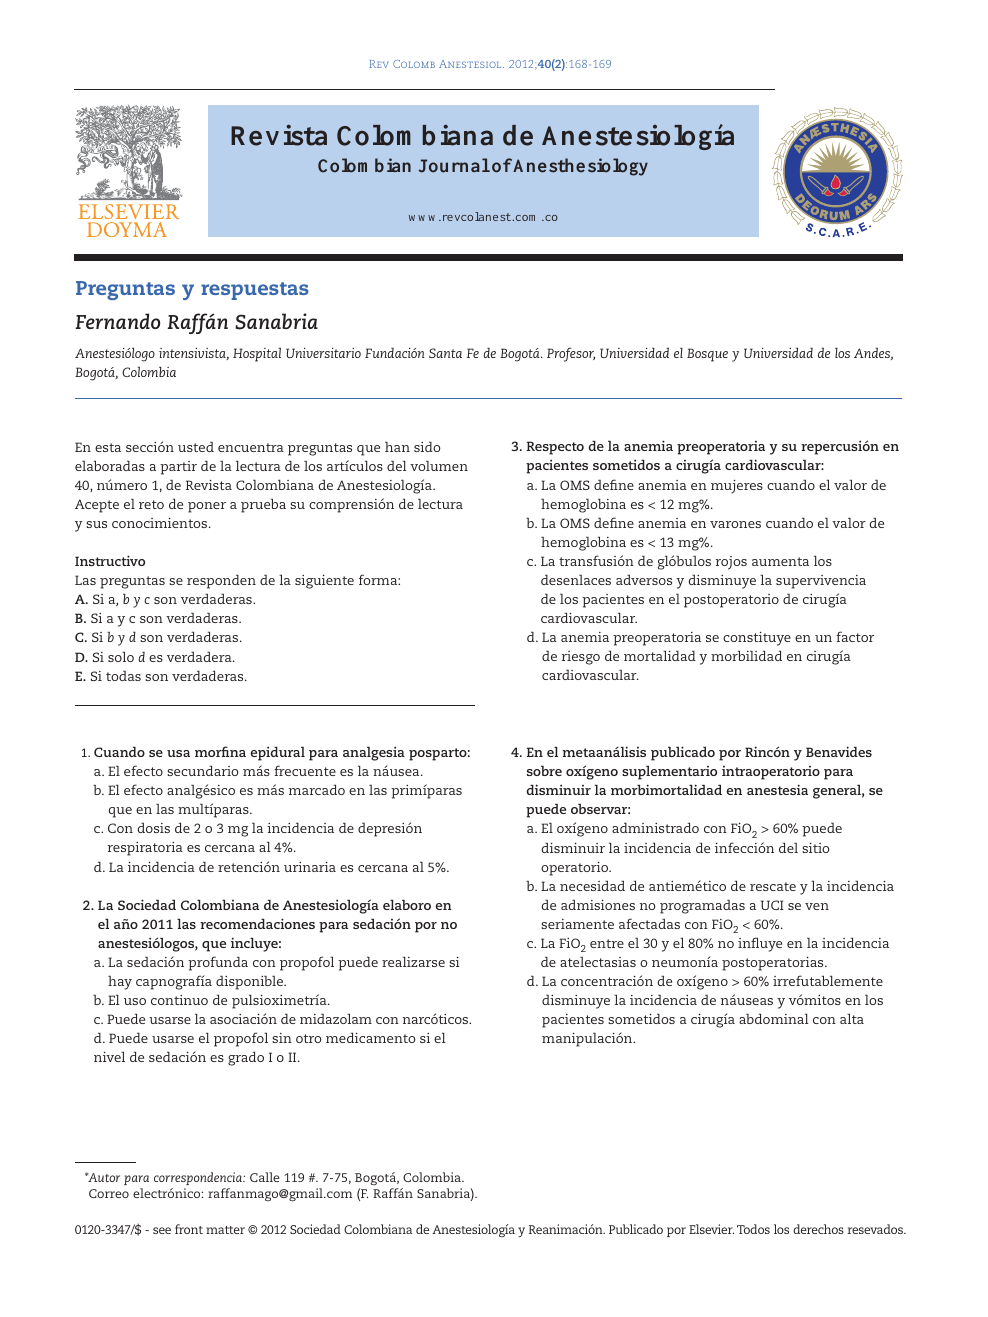 Preguntas Y Respuestas Topic Of Research Paper In Sociology Download Scholarly Article Pdf And Read For Free On Cyberleninka Open Science Hub